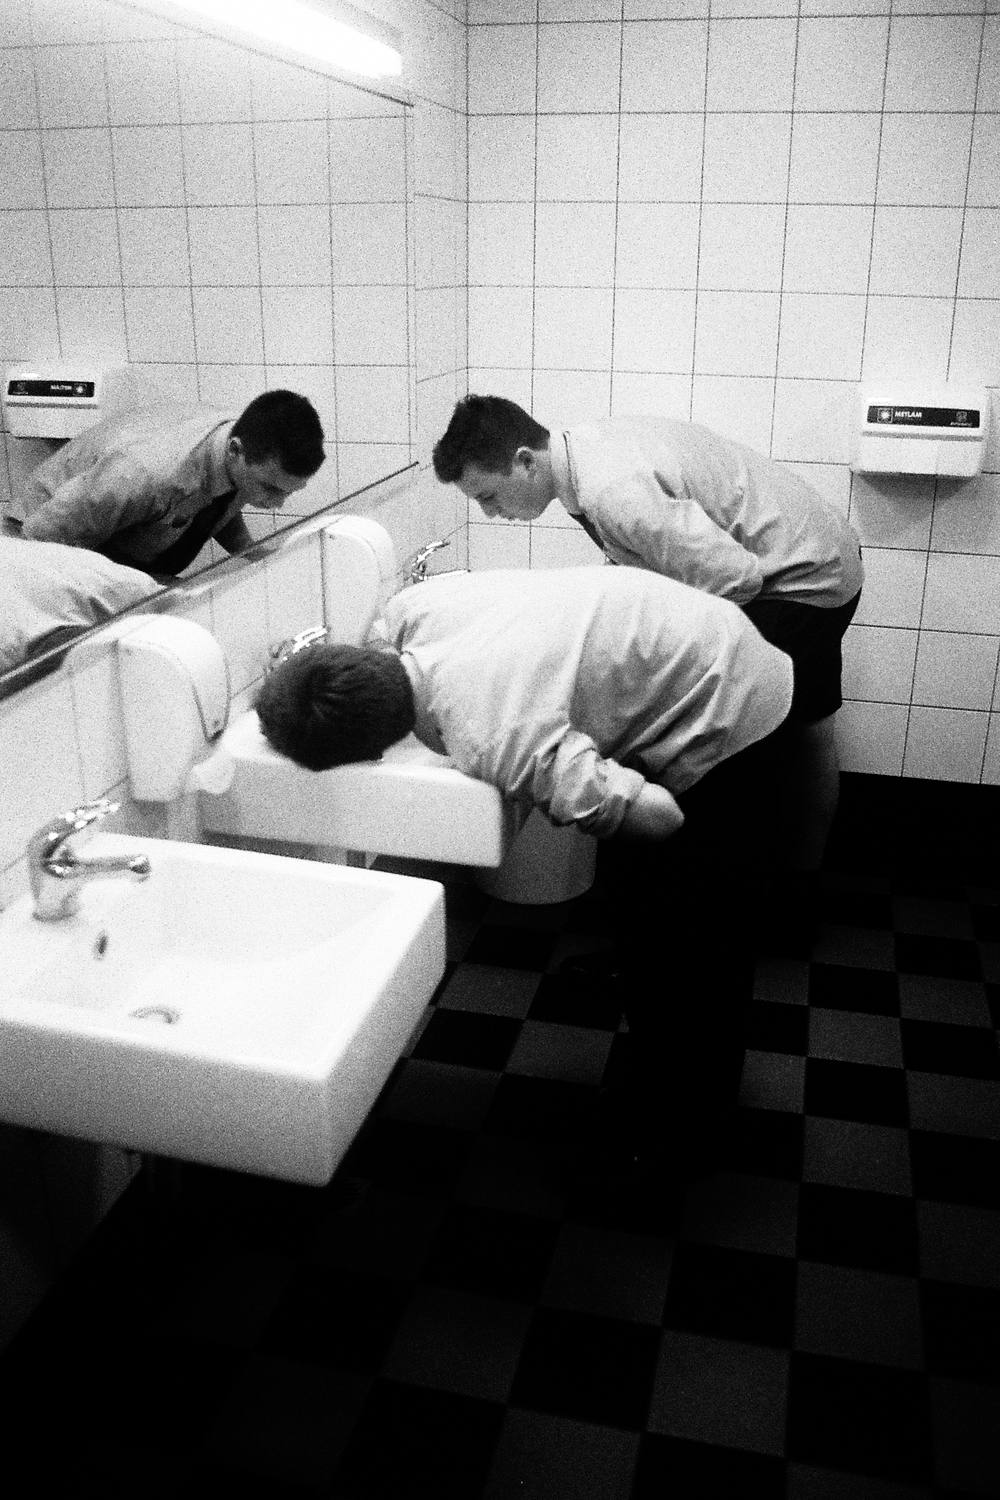 Students drinking from the tap in the CPAC bathroom, 2016